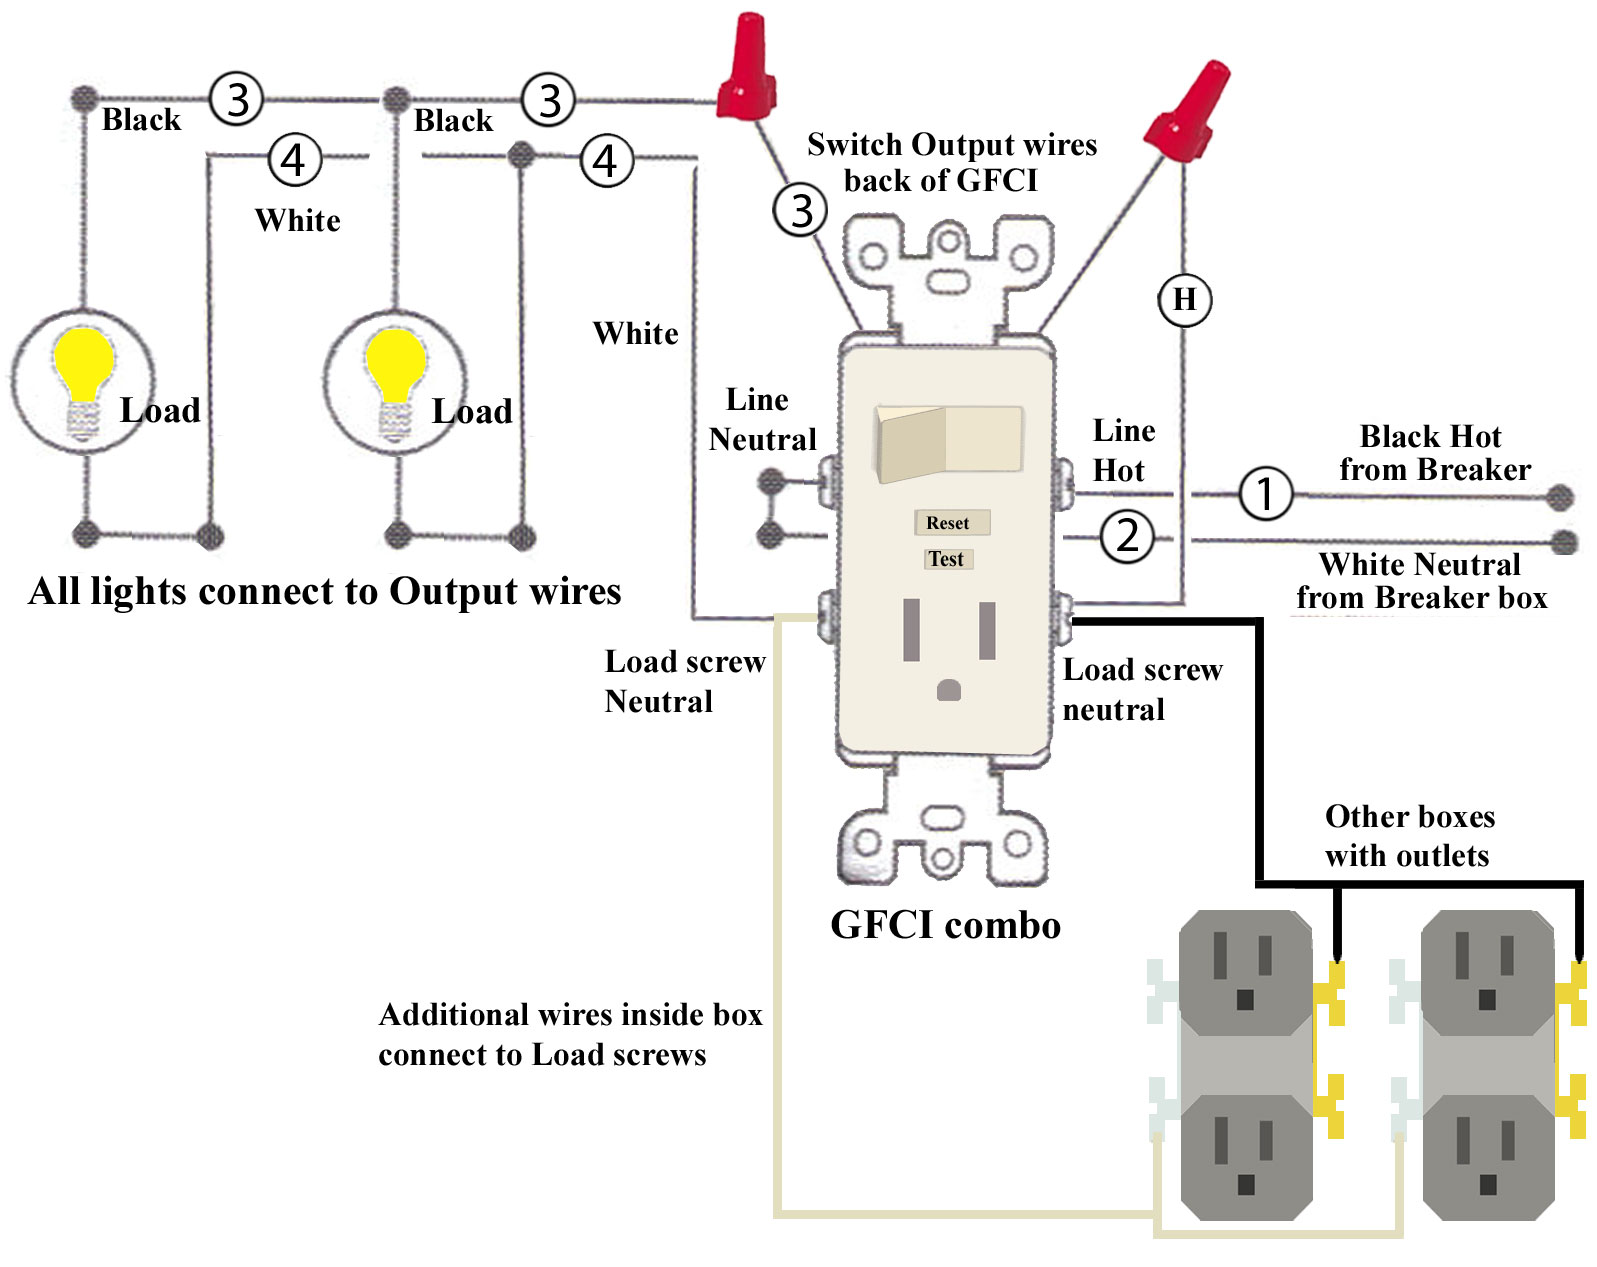 GFCI combo wiring3 update how to install and troubleshoot gfci leviton gfci wiring diagram at suagrazia.org